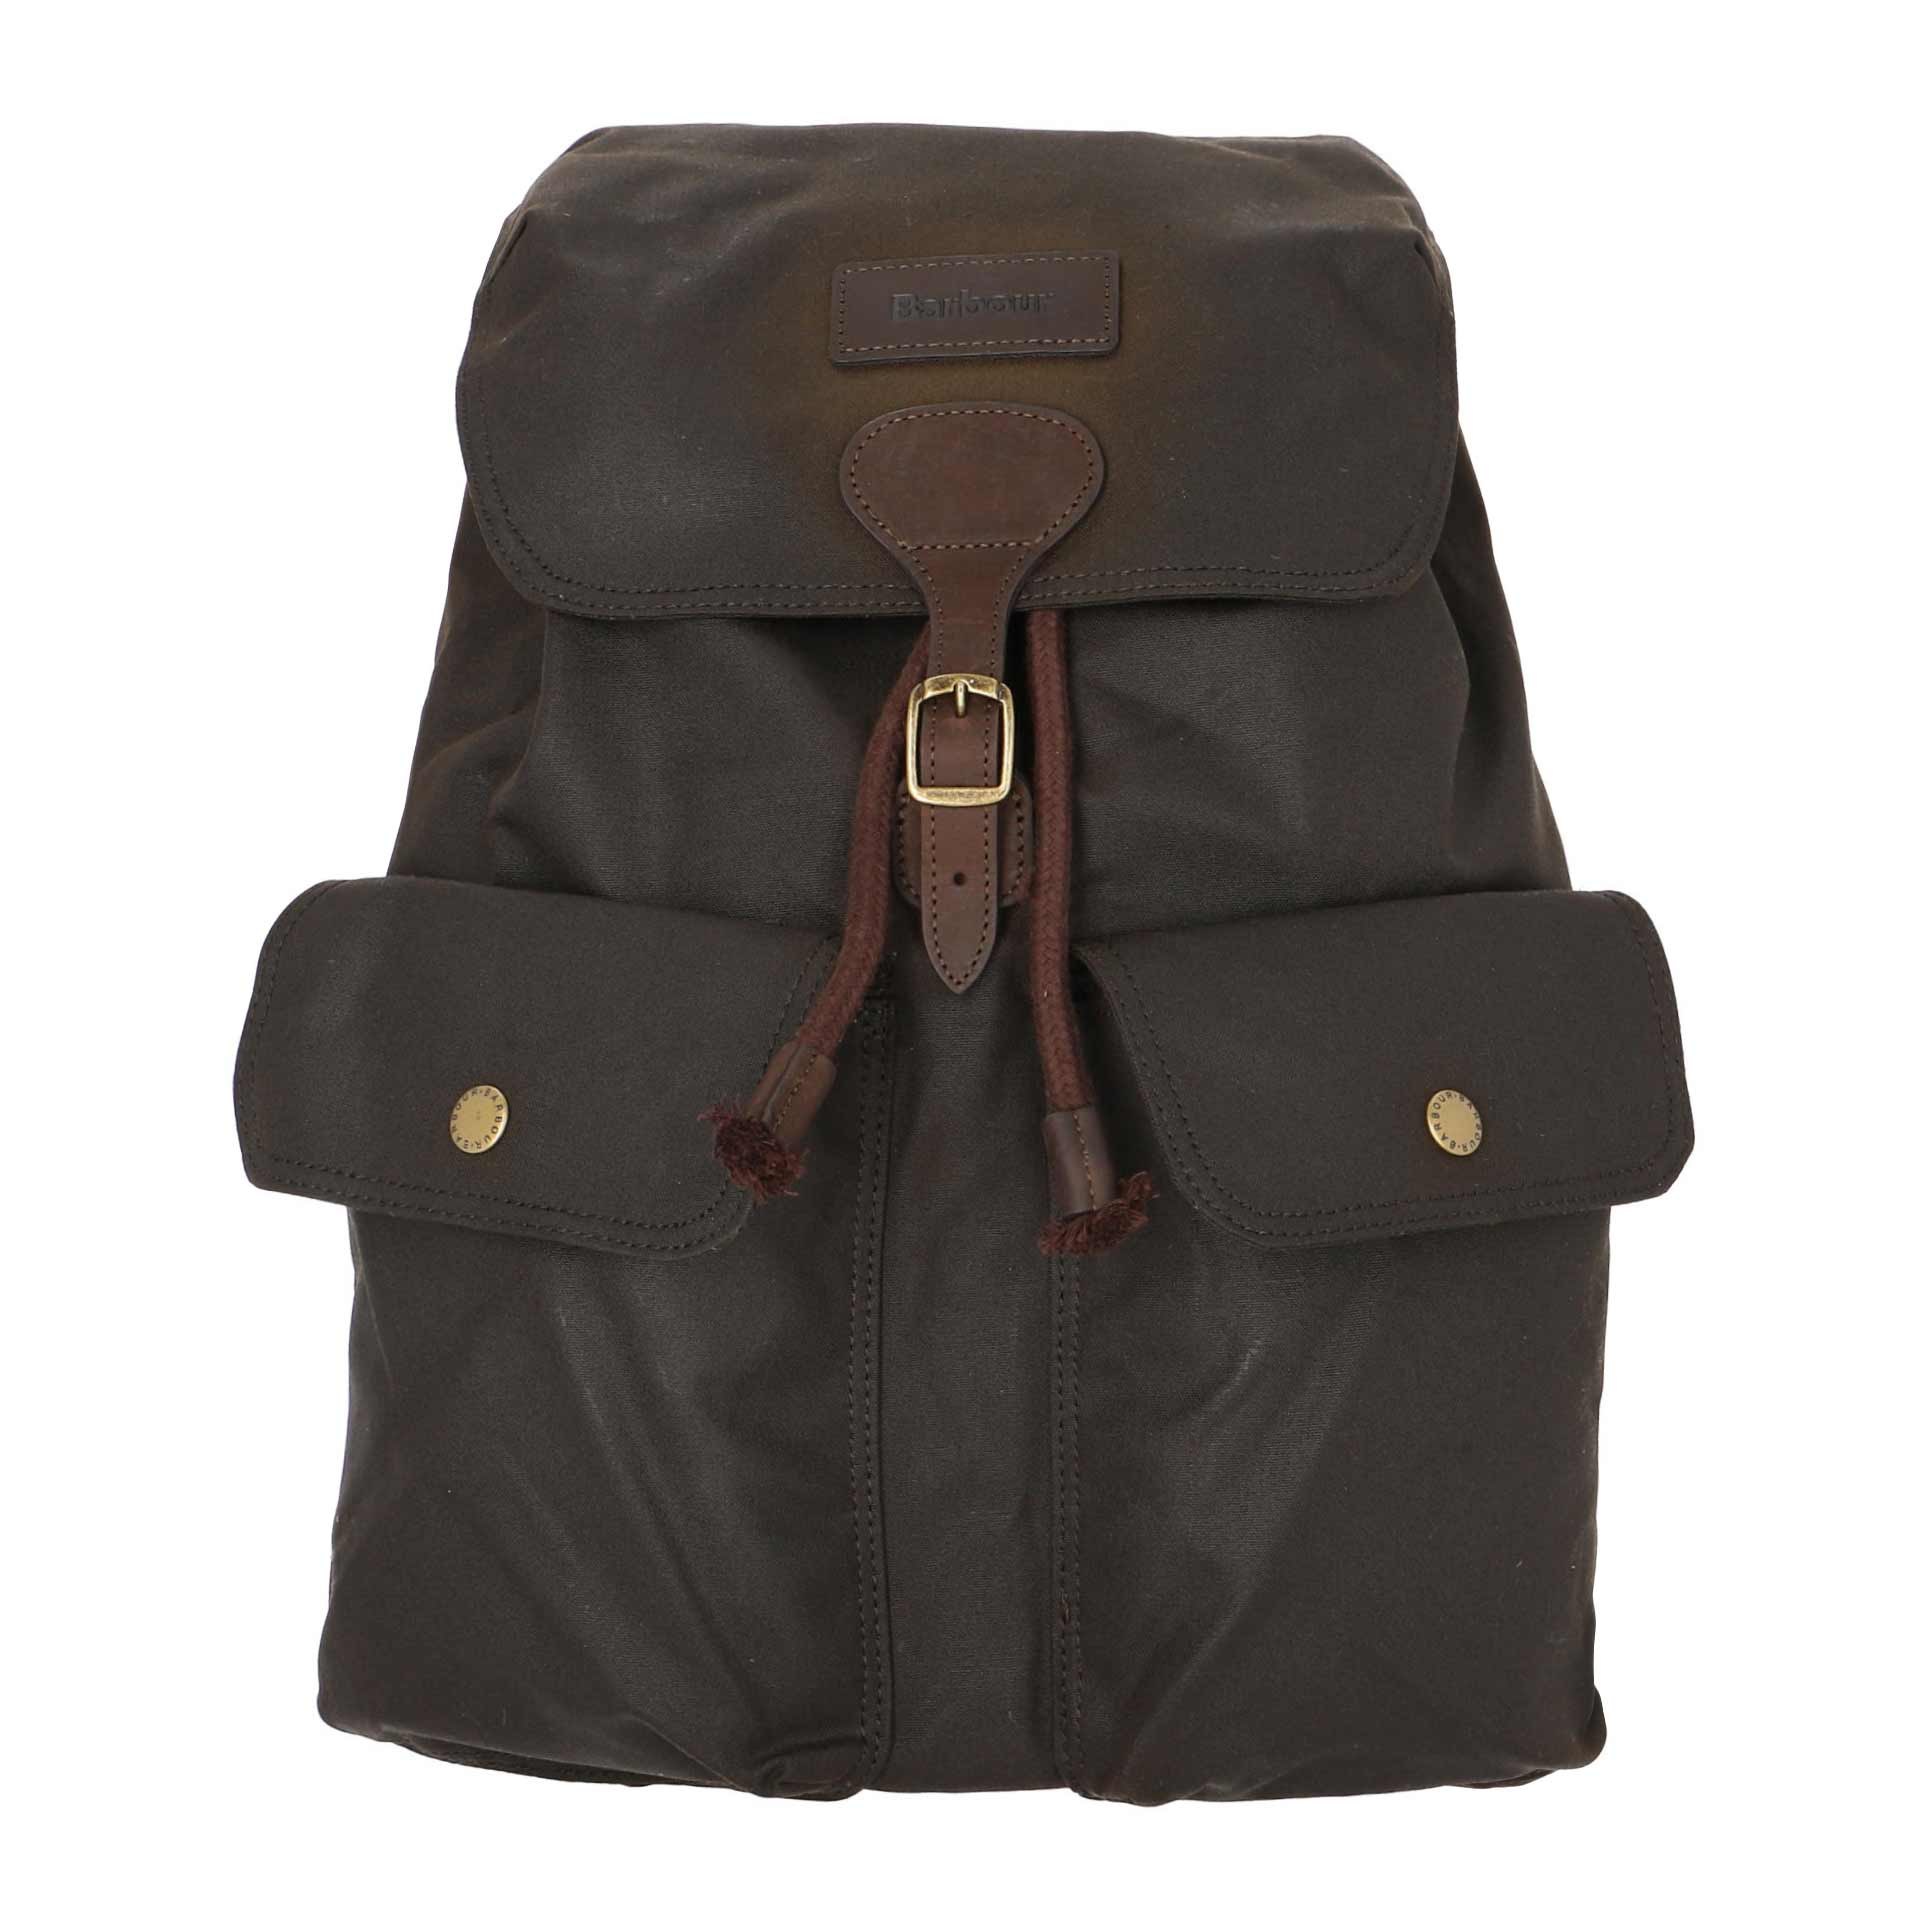 Barbour Beaufort Rucksack olive